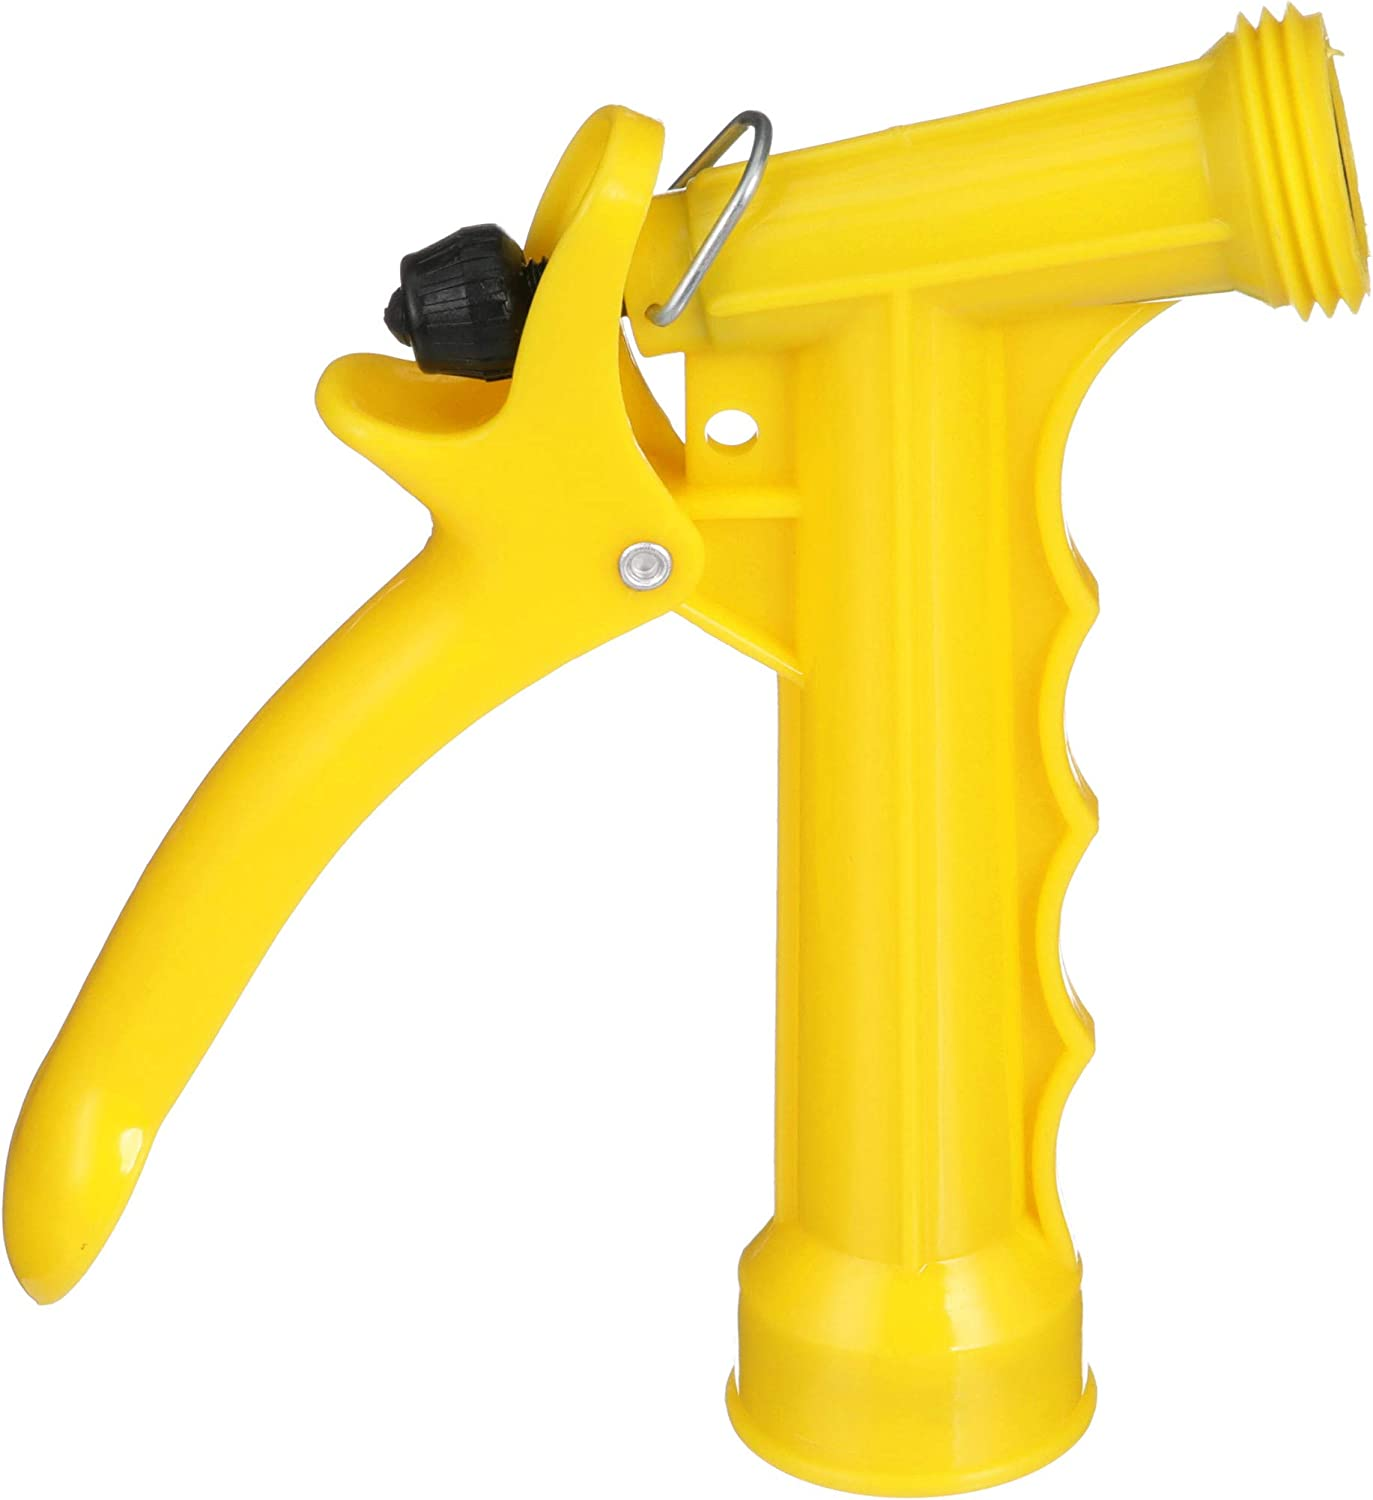 Seachoice 79601 Plastic Hose Nozzle with Locking Spray Lever and Stainless Steel Return Spring Yellow 5-1/2""